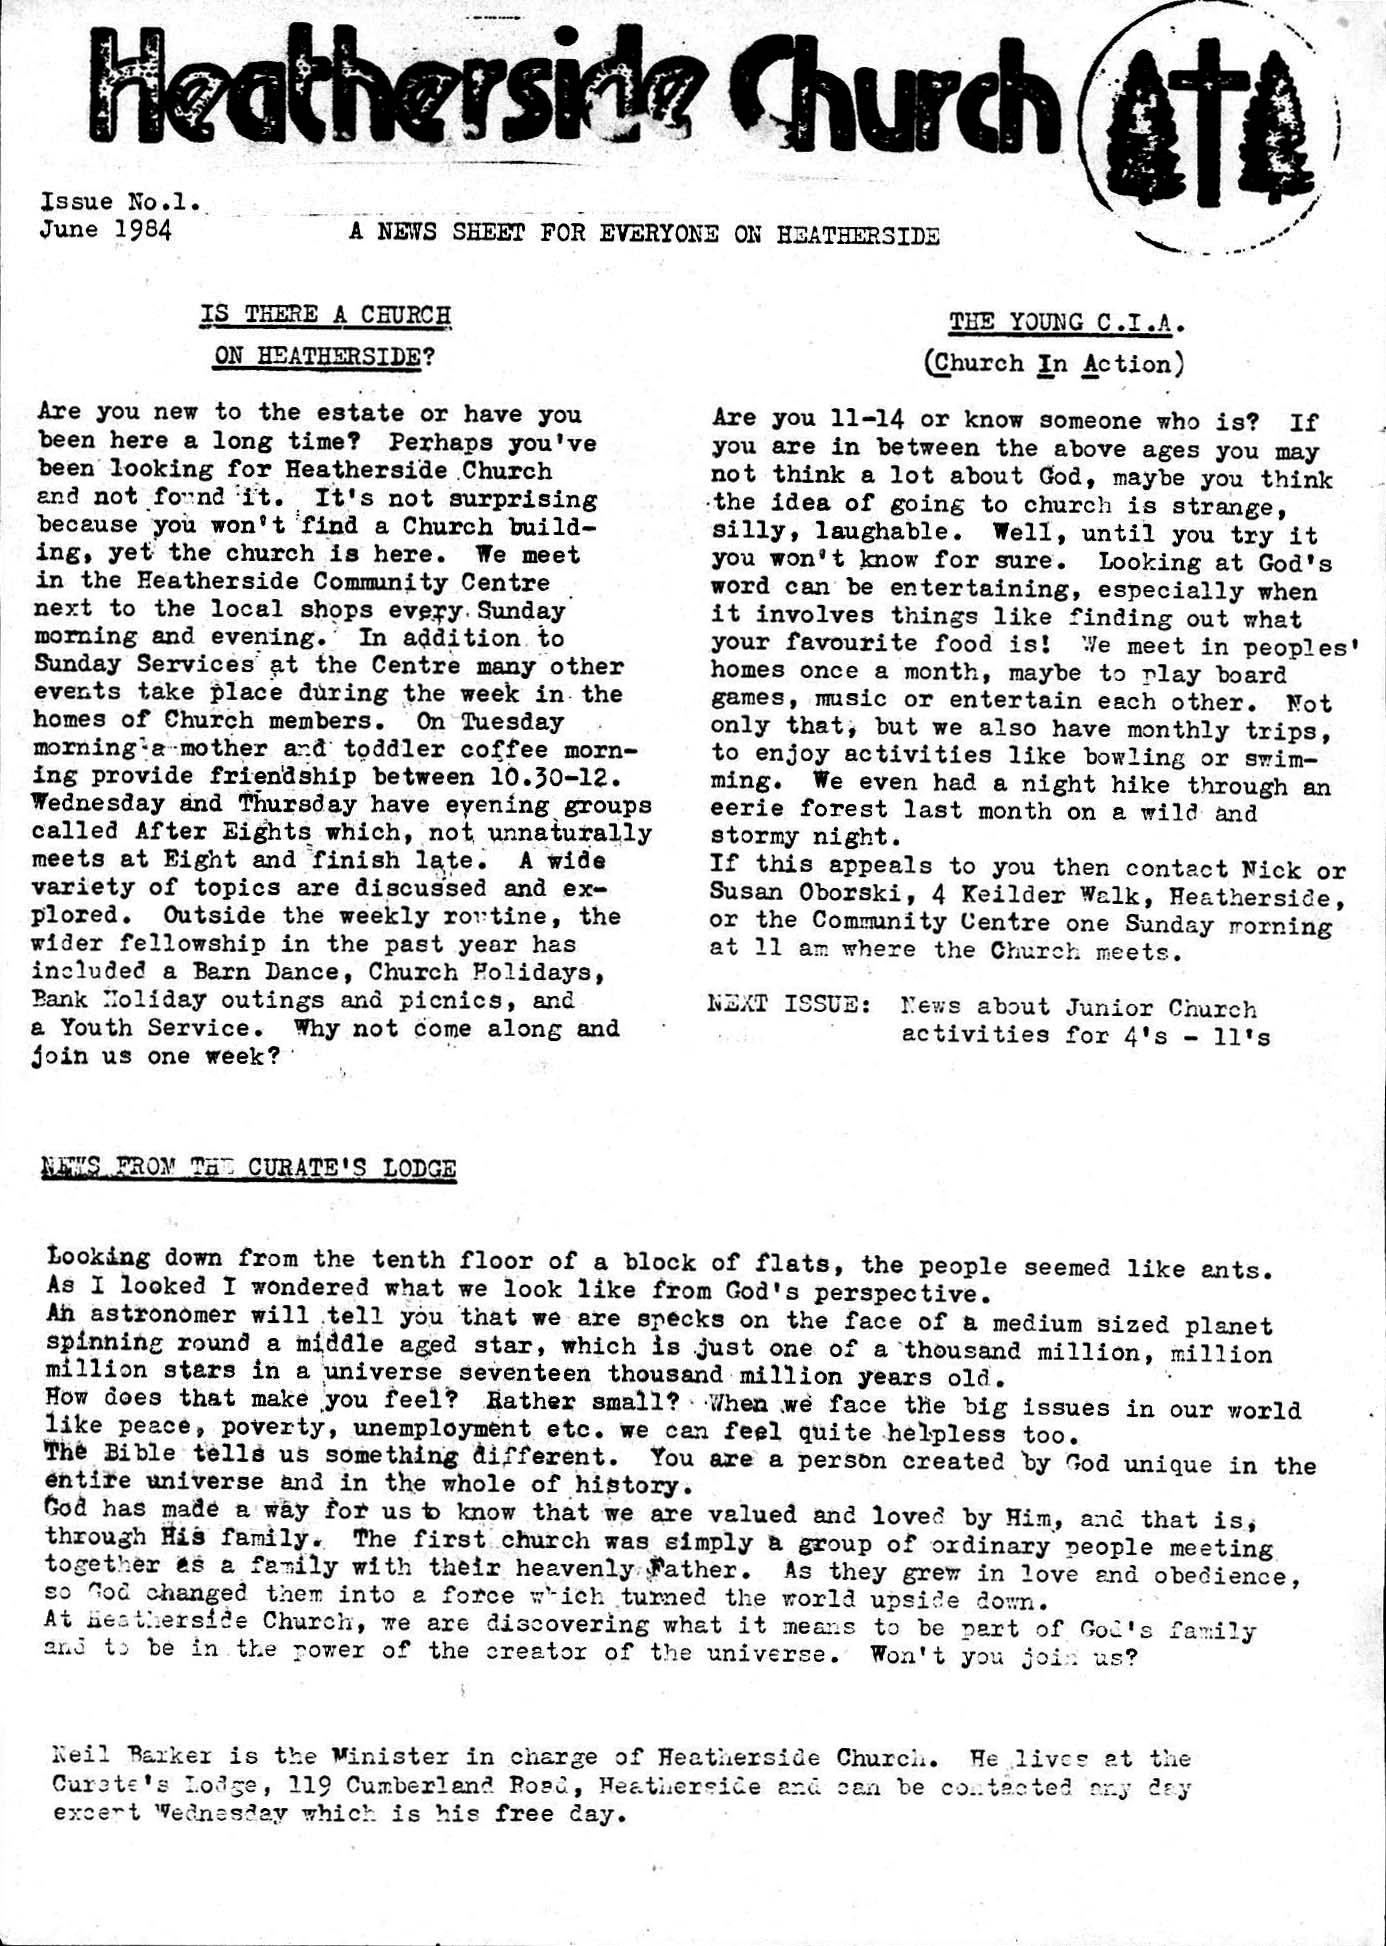 Bulletin Issue 1 June 1984